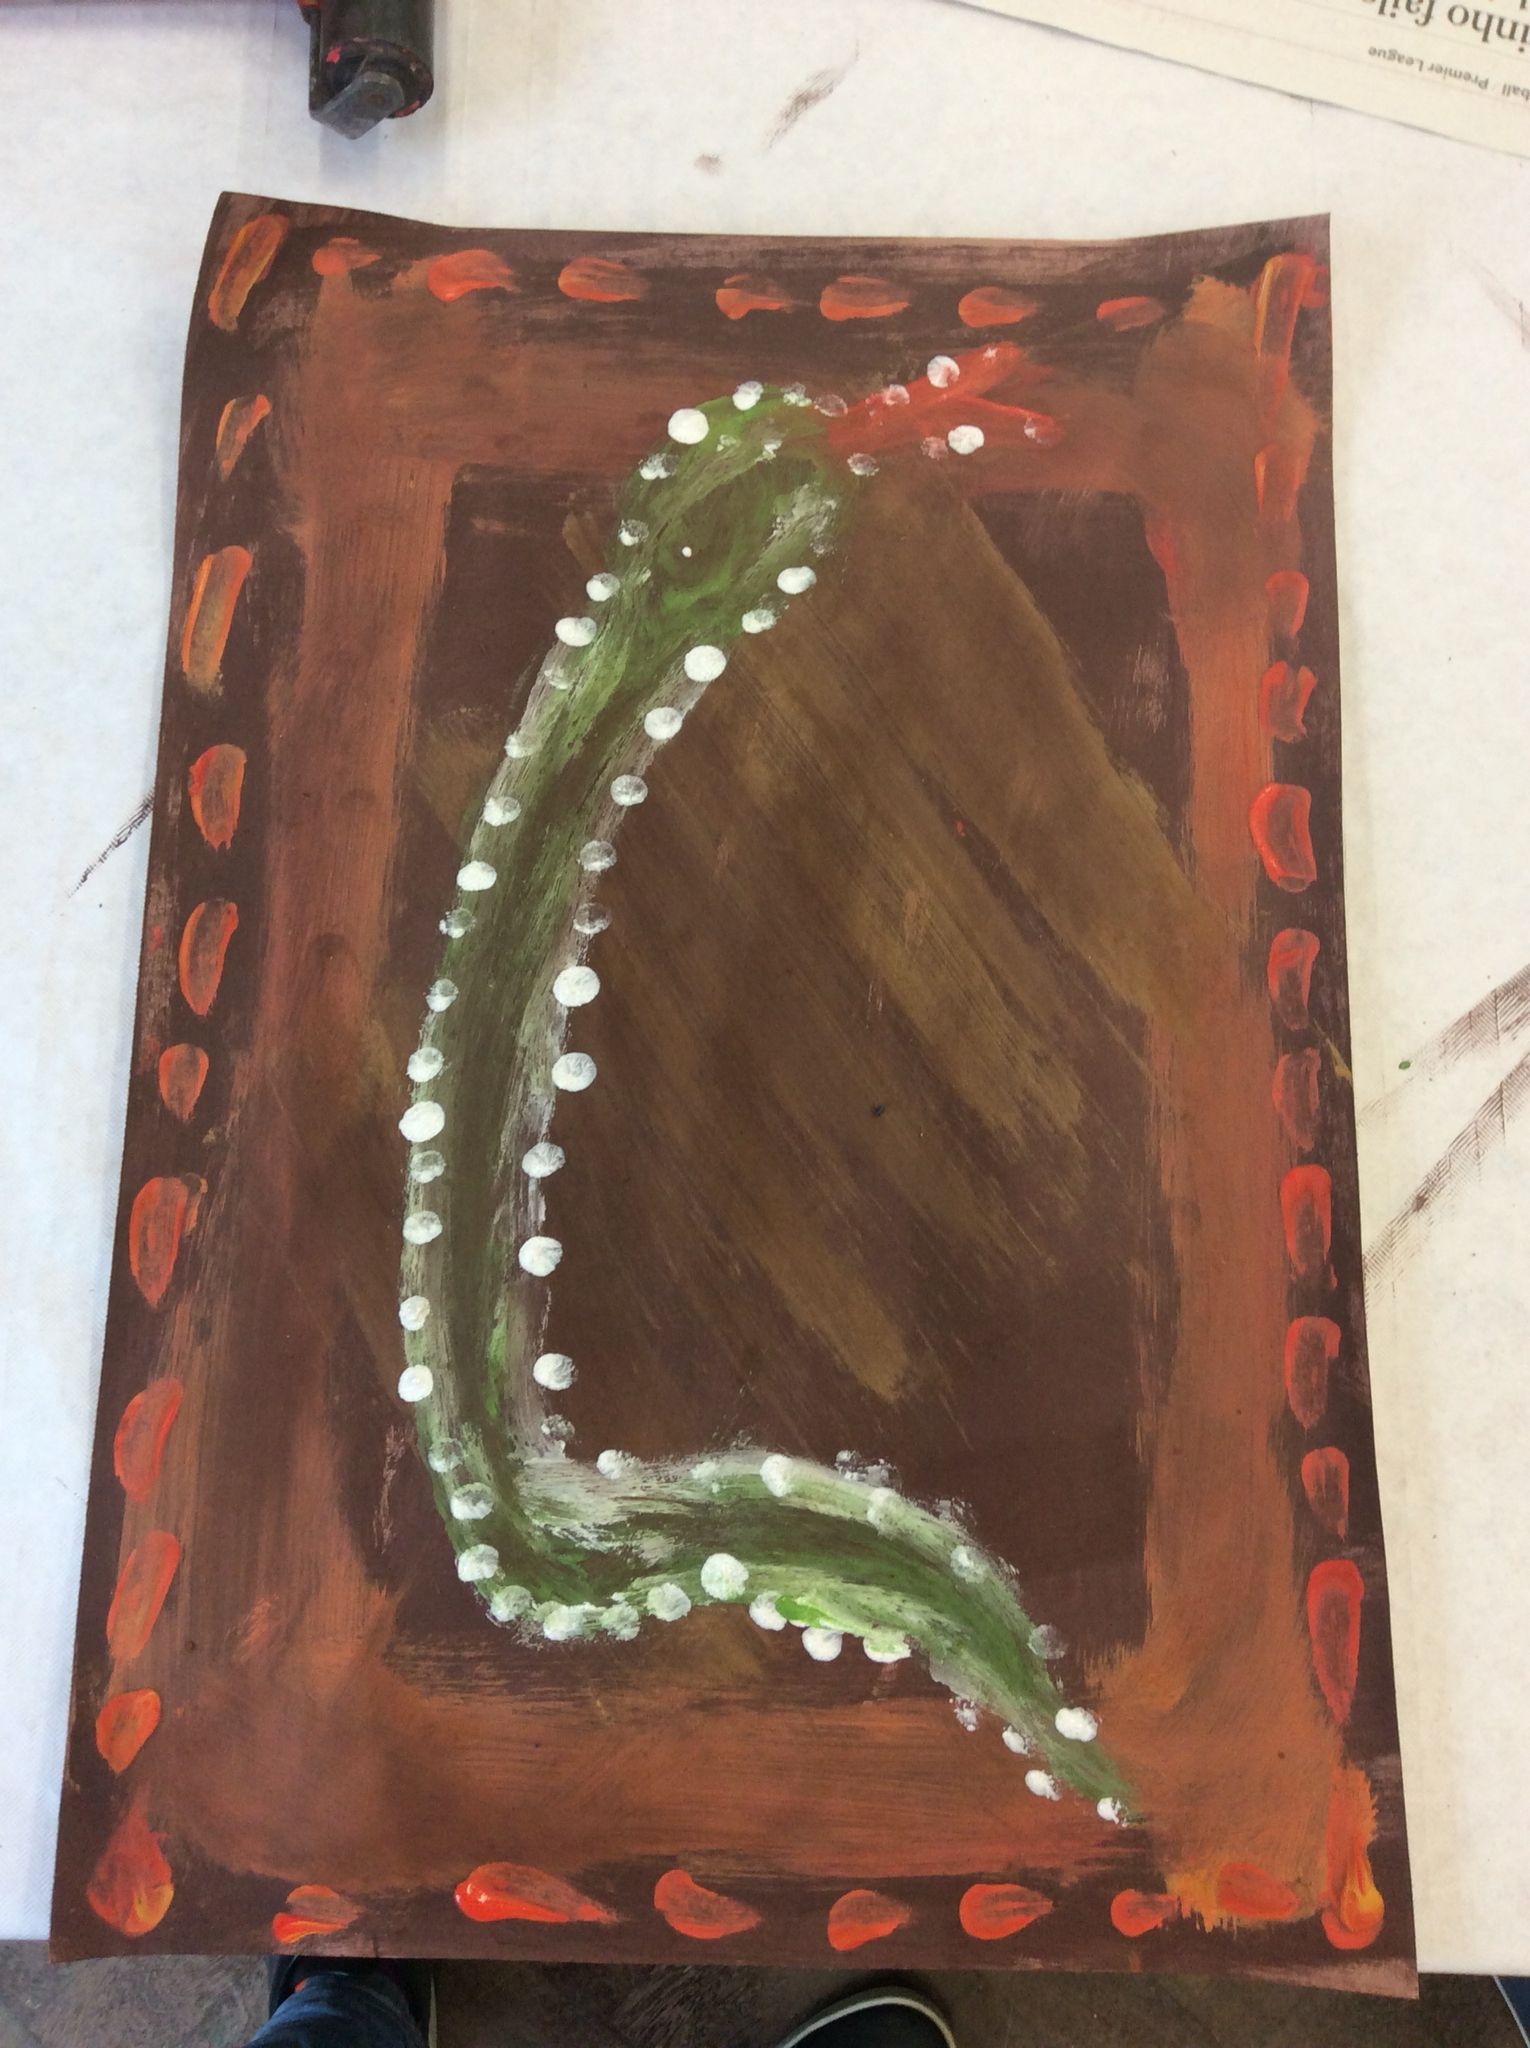 Aboriginal art, using earthy colours, as that would have been available to the aboriginals